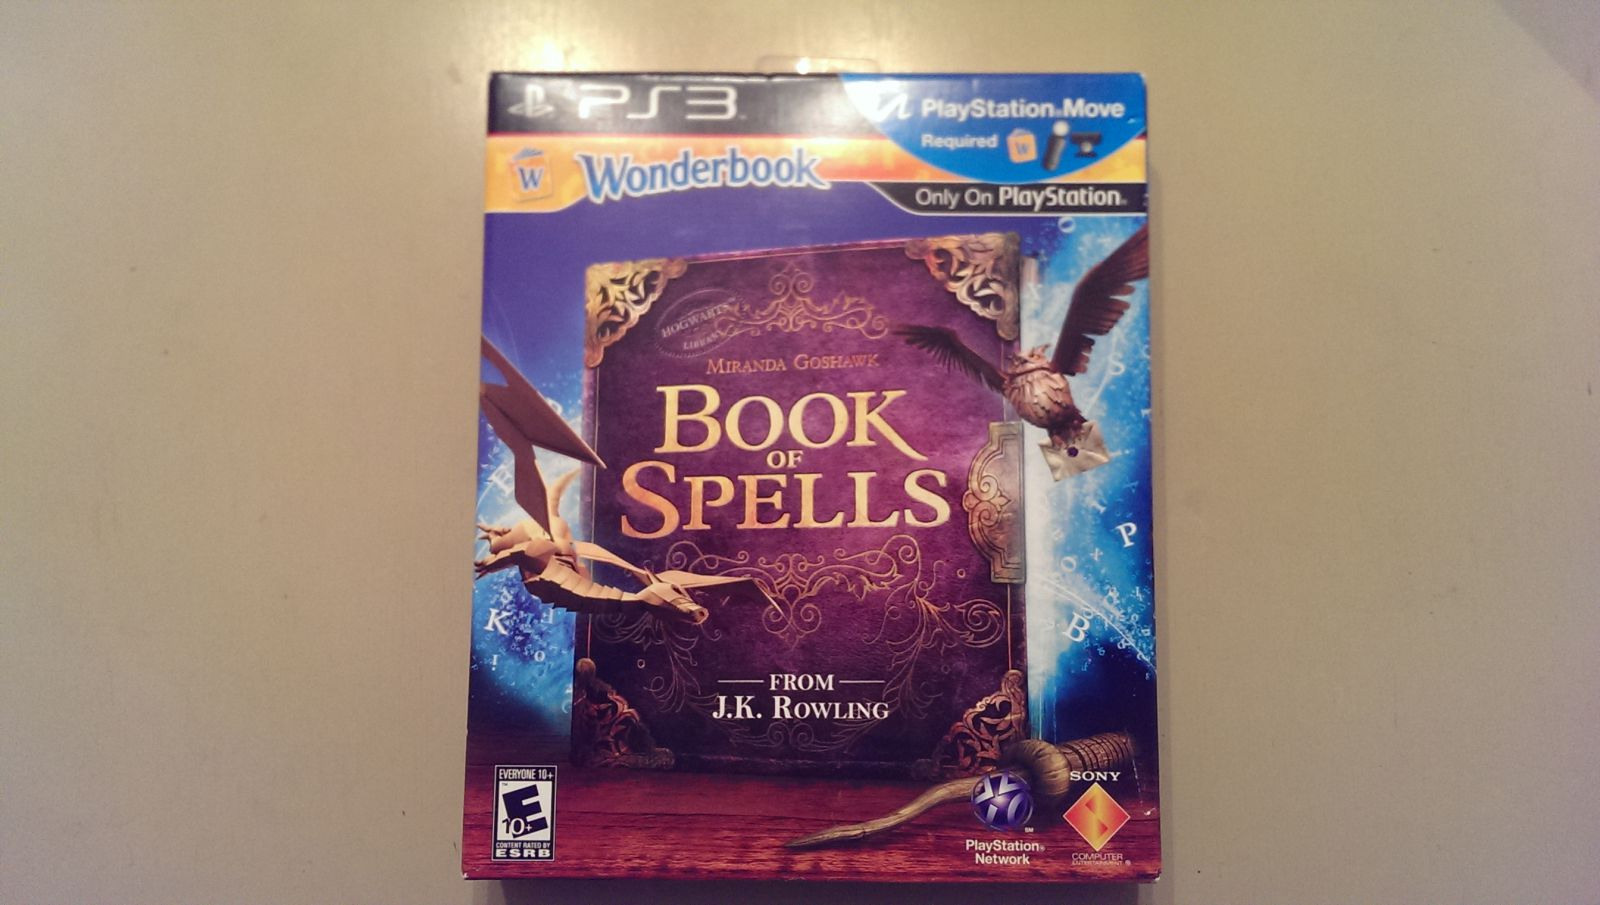 Book of Spells $4.99